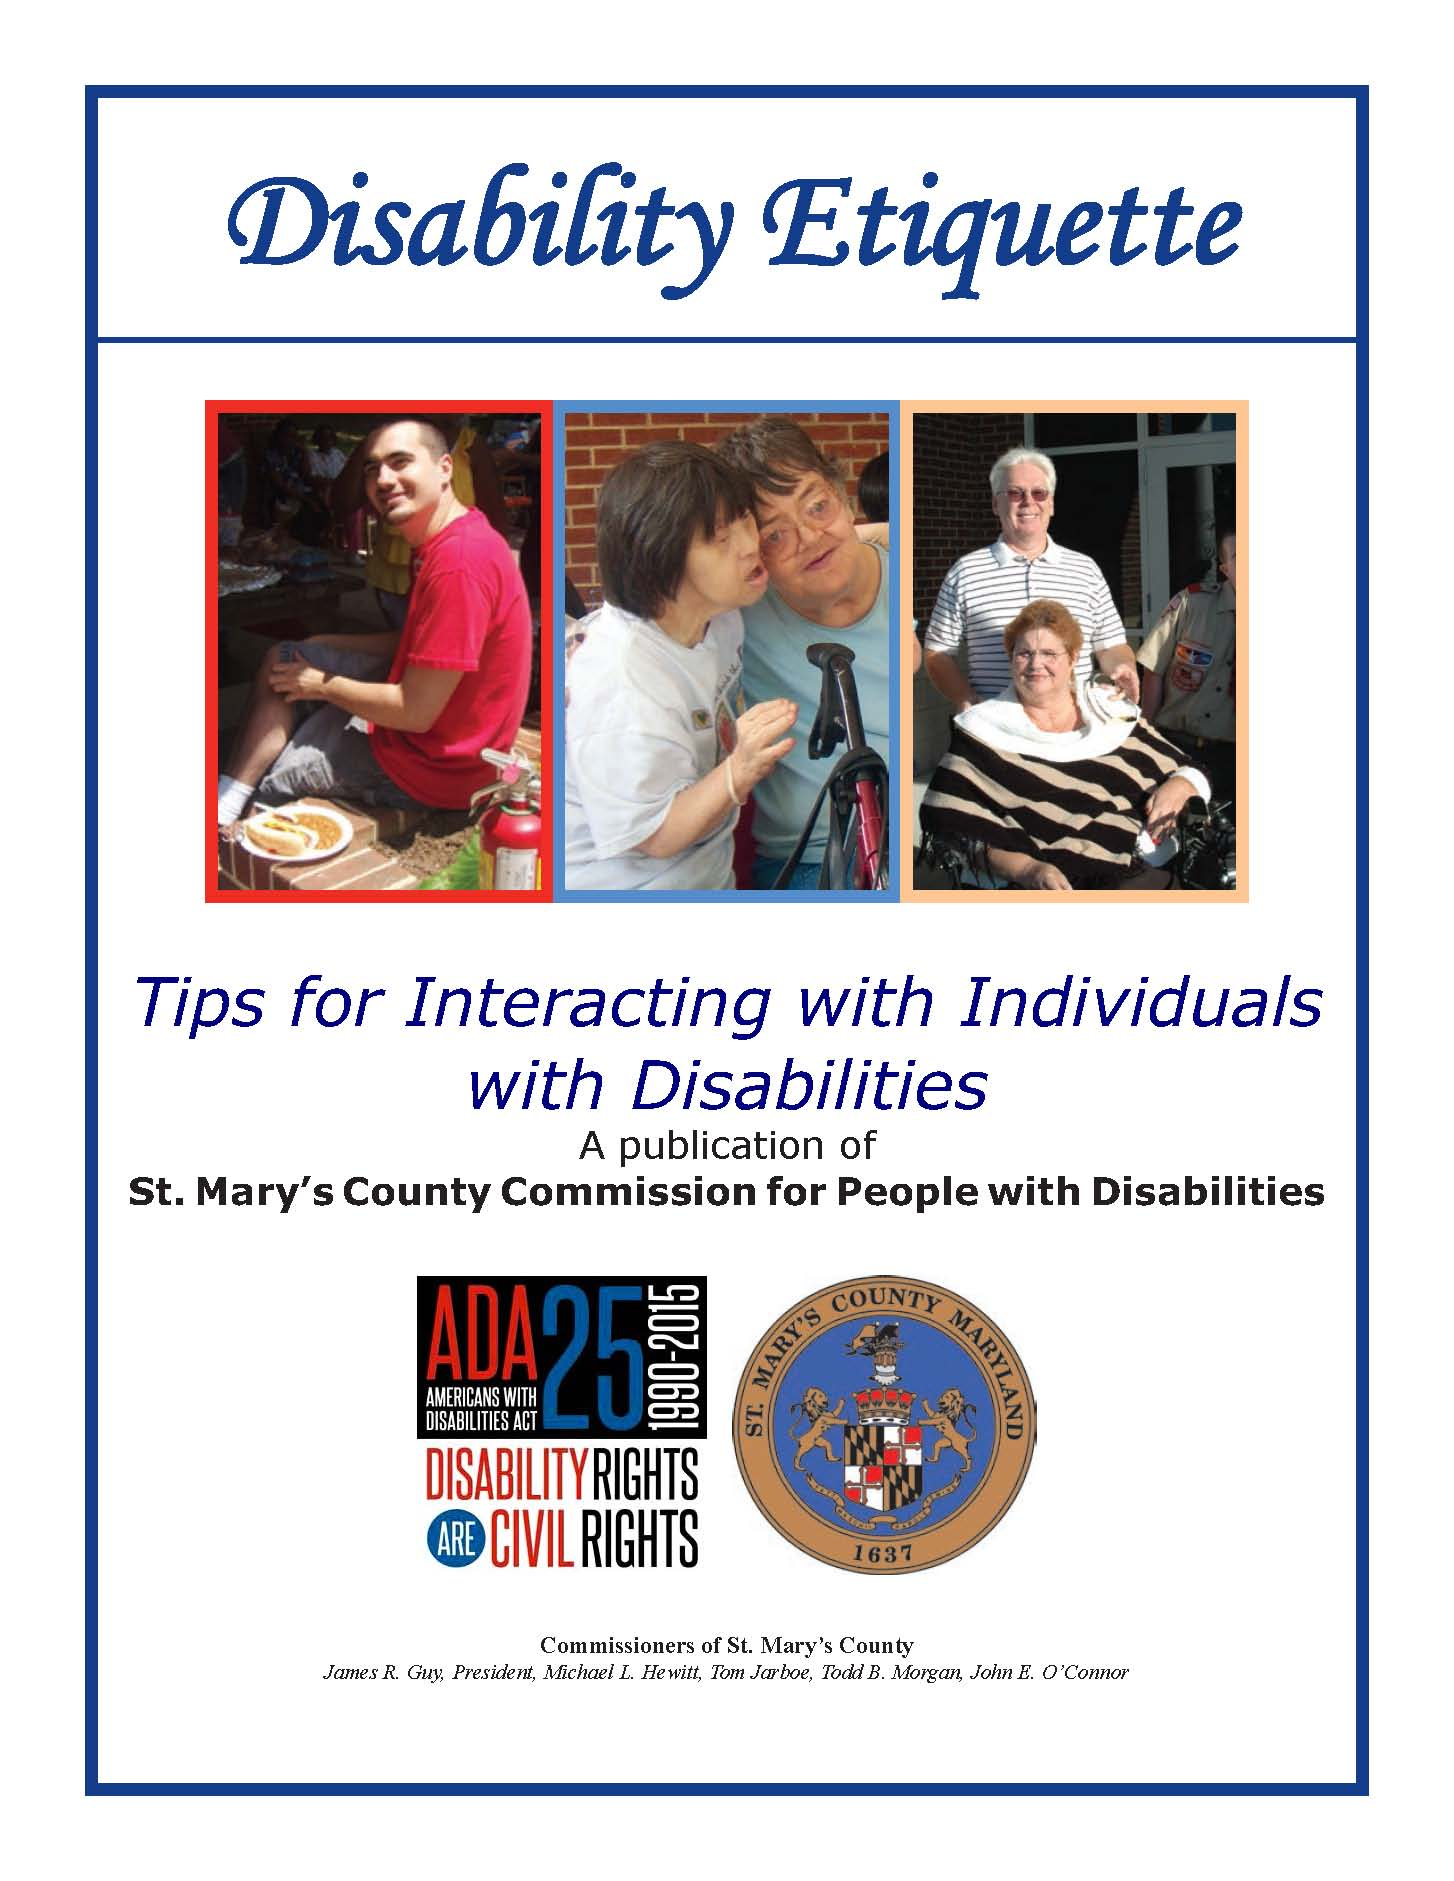 image of disability guide